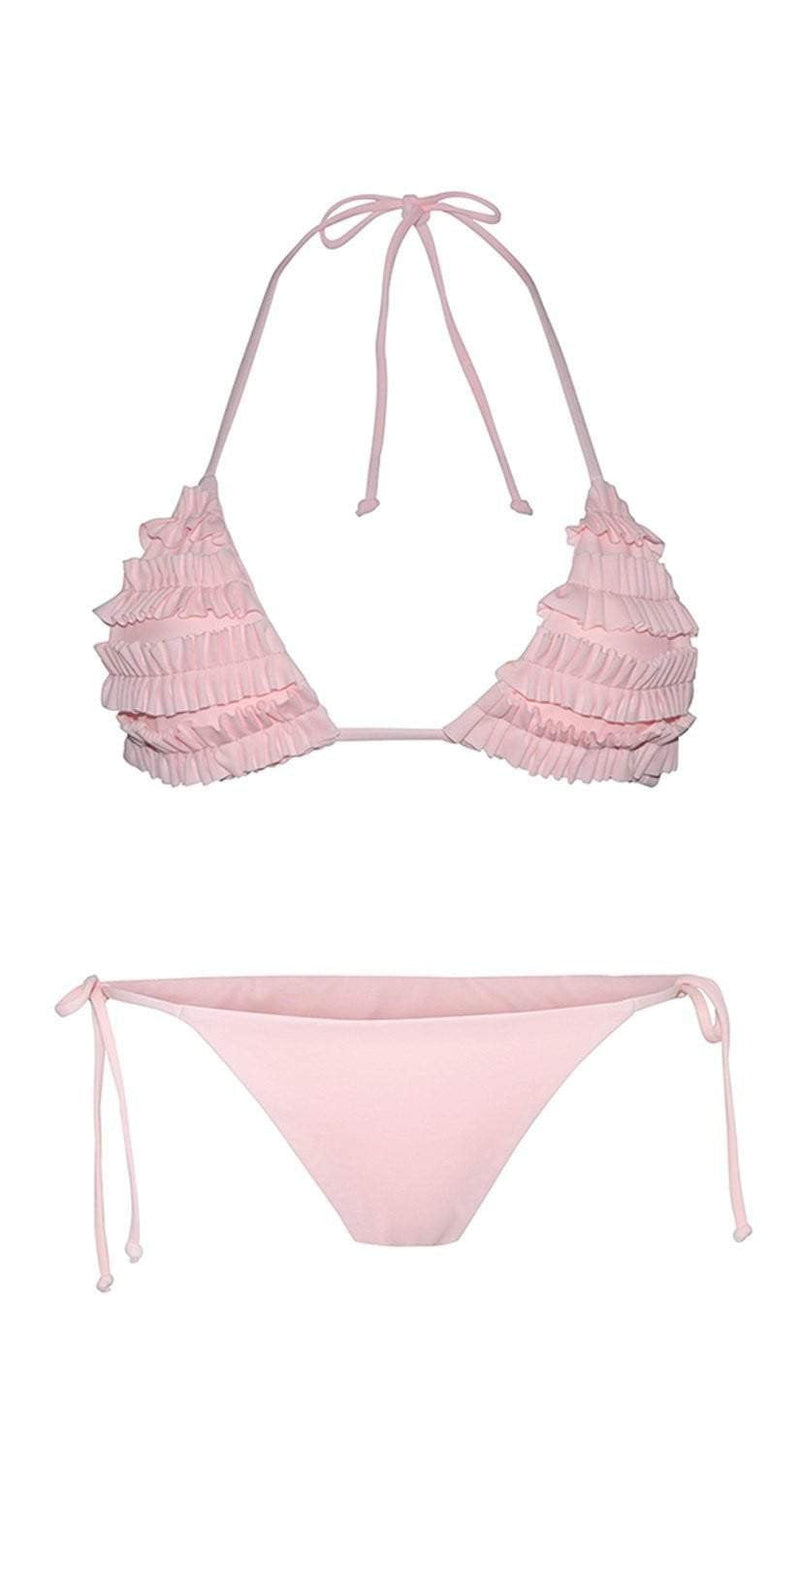 Chloe Rose Bloom Bikini Set In Pink: